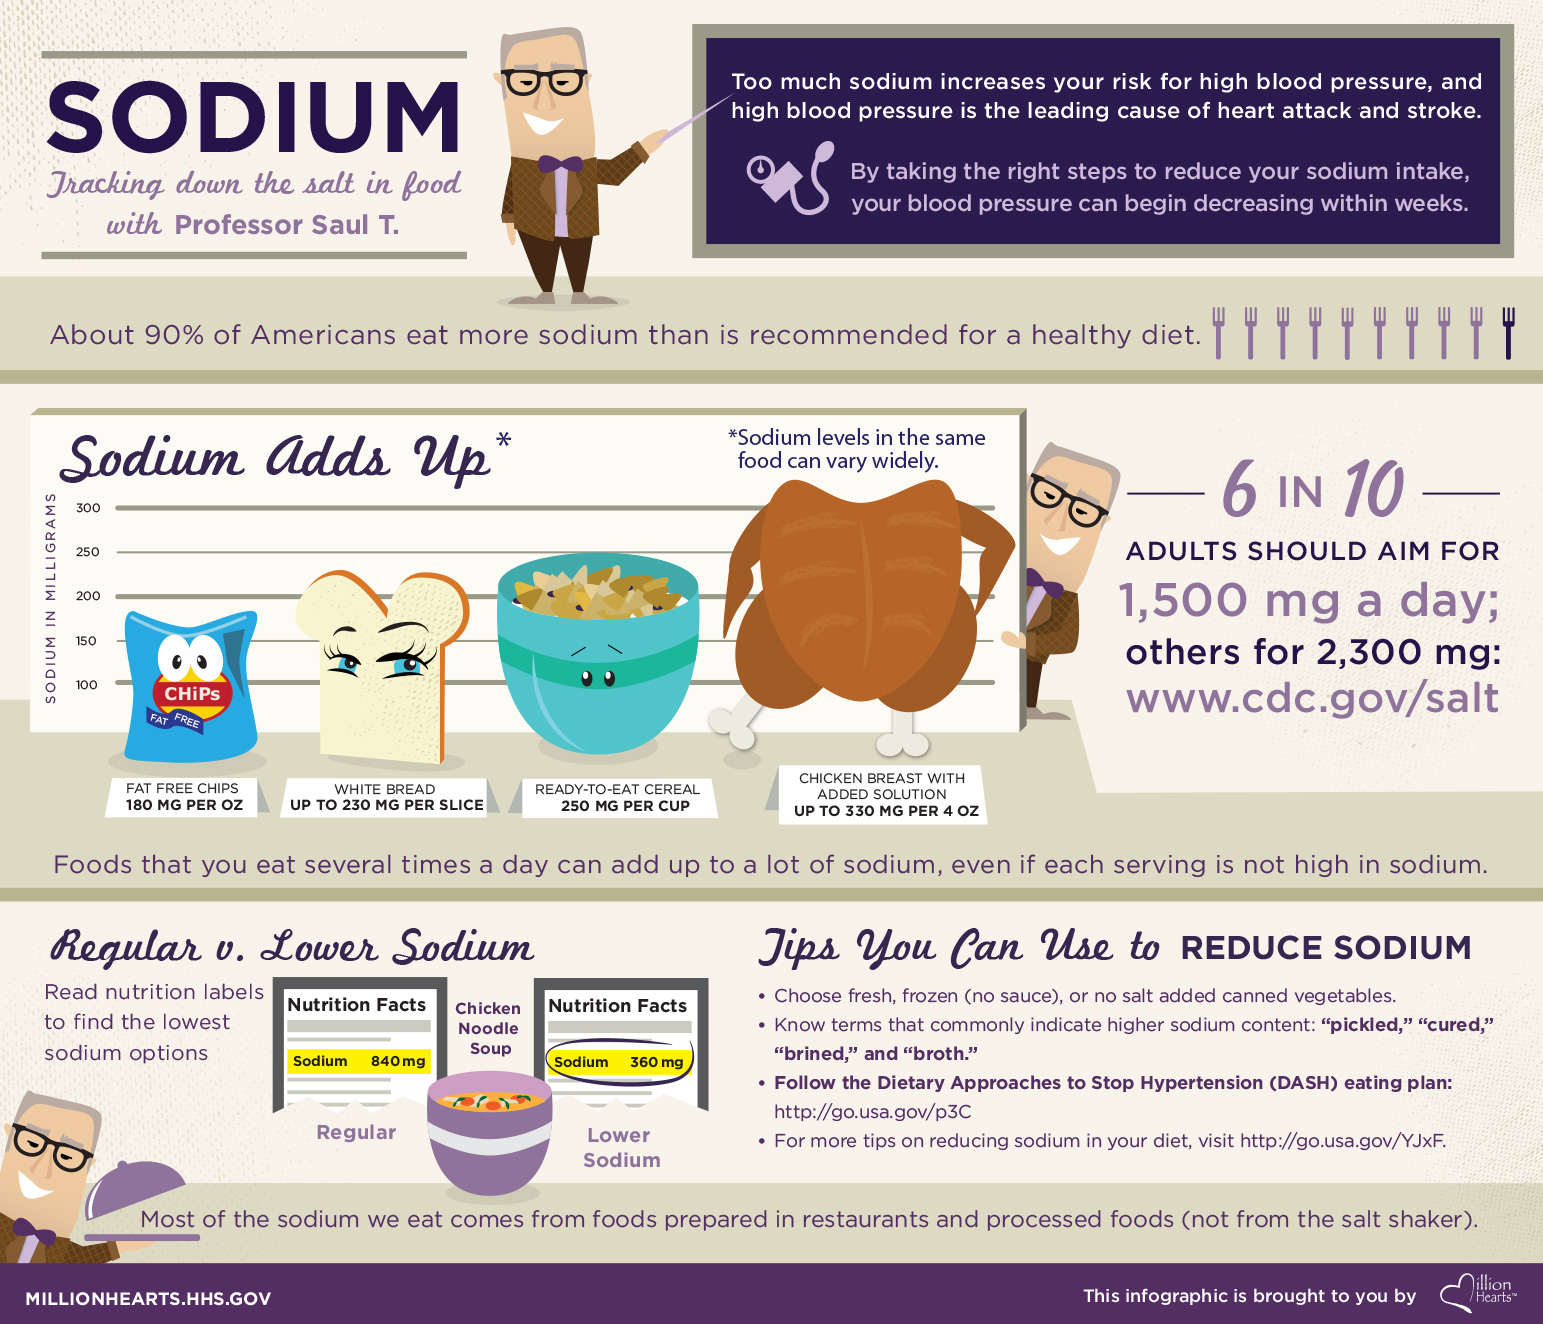 Tracking down the salt in food with Professor Saul T. Too much sodium increases your risk for high blood pressure, and high blood pressure is the leading cause of heart attack and stroke. By taking the right steps to reduce your sodium intake, your blood pressure can begin decreasing within weeks. About 90% of Americans eat more sodium than is recommended for a healthy diet. Six in 10 adults should aim for 1,500 milligrams a day; others for 2,300 milligrams. Sodium adds up, and sodium levels in the same food can vary widely. Fat free chips can have 180 milligrams per ounce; white bread, up to 230 milligrams per slice; ready-to-eat cereal, 250 milligrams per cup; chicken breast with added solution, up to 330 milligrams per 4 ounces. Foods that you eat several times a day can add up to a lot of sodium, even if each serving is not high in sodium. Read Nutrition labels to find the lowest sodium options. A bowl of regular chicken noodle soup can have 840 milligrams of sodium, but lower sodium chicken noodle soup can have 360 milligrams of sodium. Most of the sodium we eat comes from foods prepared in restaurants and processed foods (not from the salt shaker). Tips you can use to reduce sodium: Choose fresh, frozen (no sauce), or no salt added canned vegetables; Know terms that commonly indicate higher sodium content, like pickled, cured, brined, and broth; Follow the Dietary Approaches to Stop Hypertension (DASH) eating plan at http://go.usa.gov/p3C. For more tips on reducing sodium in your diet, visit http://go.usa.gov/YJxF. This infographic is brought to you by Million Hearts. millionhearts.hhs.gov